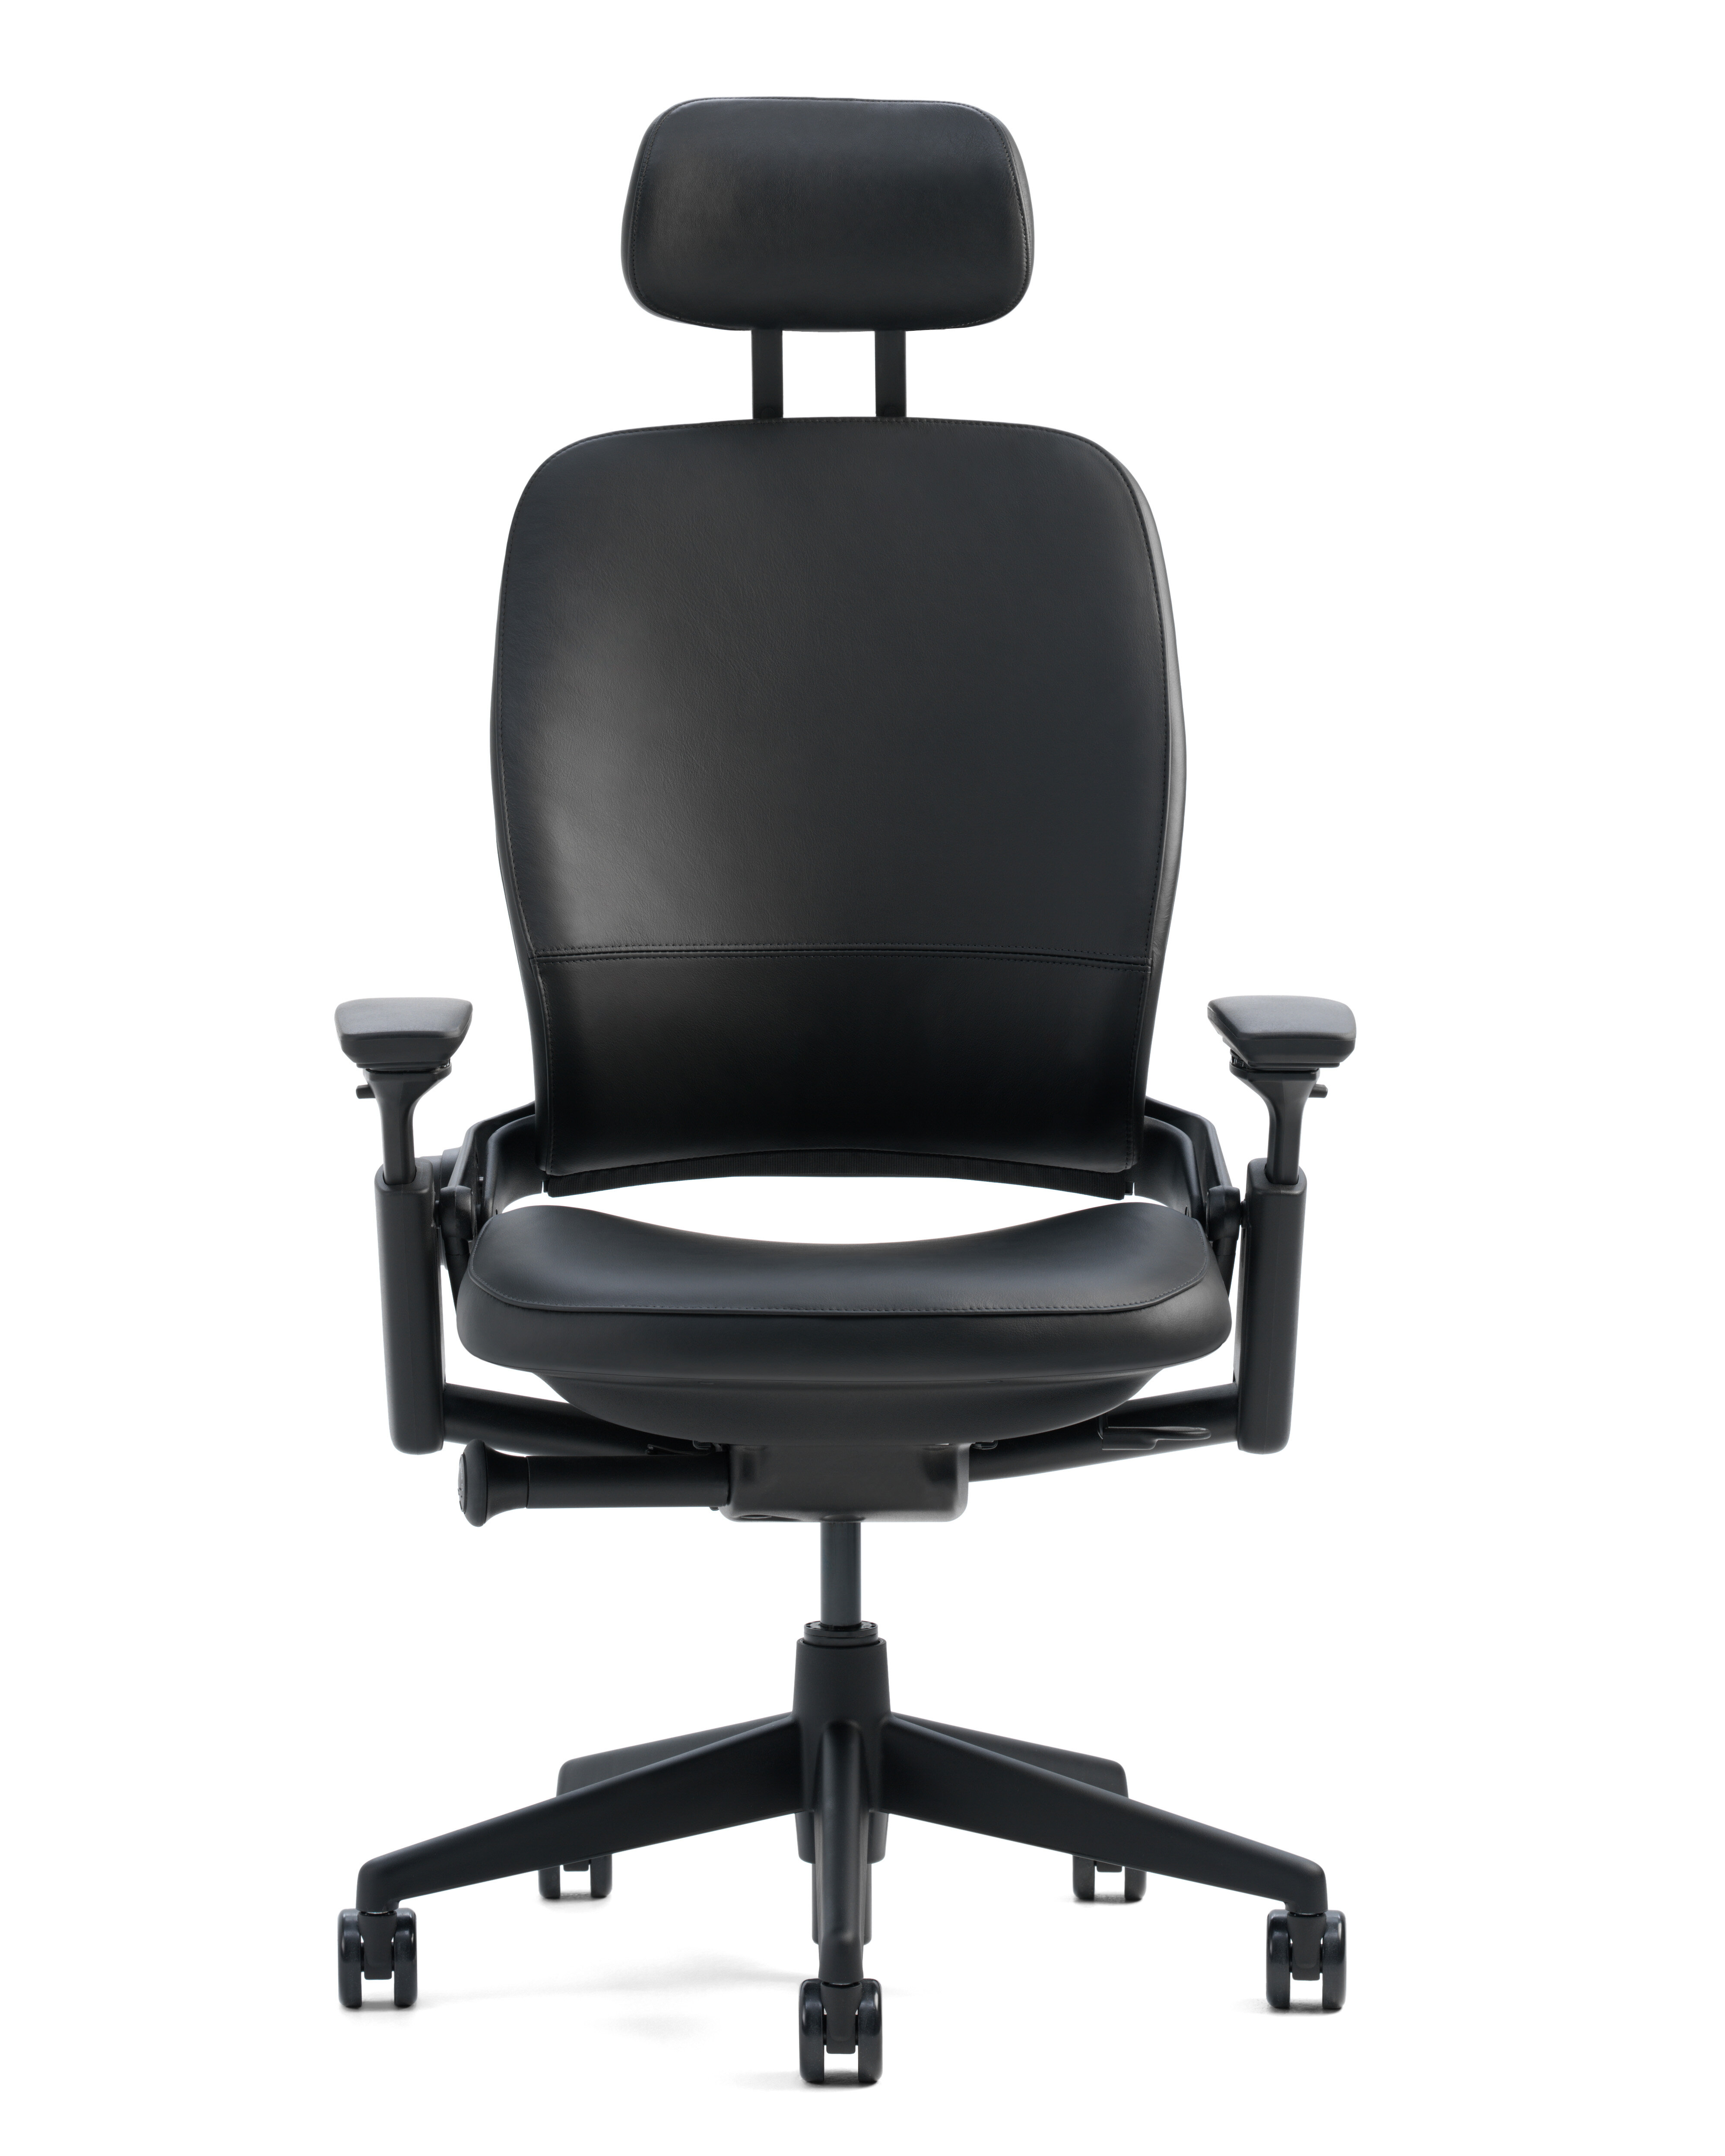 Leap® High-Back Leather Desk Chair